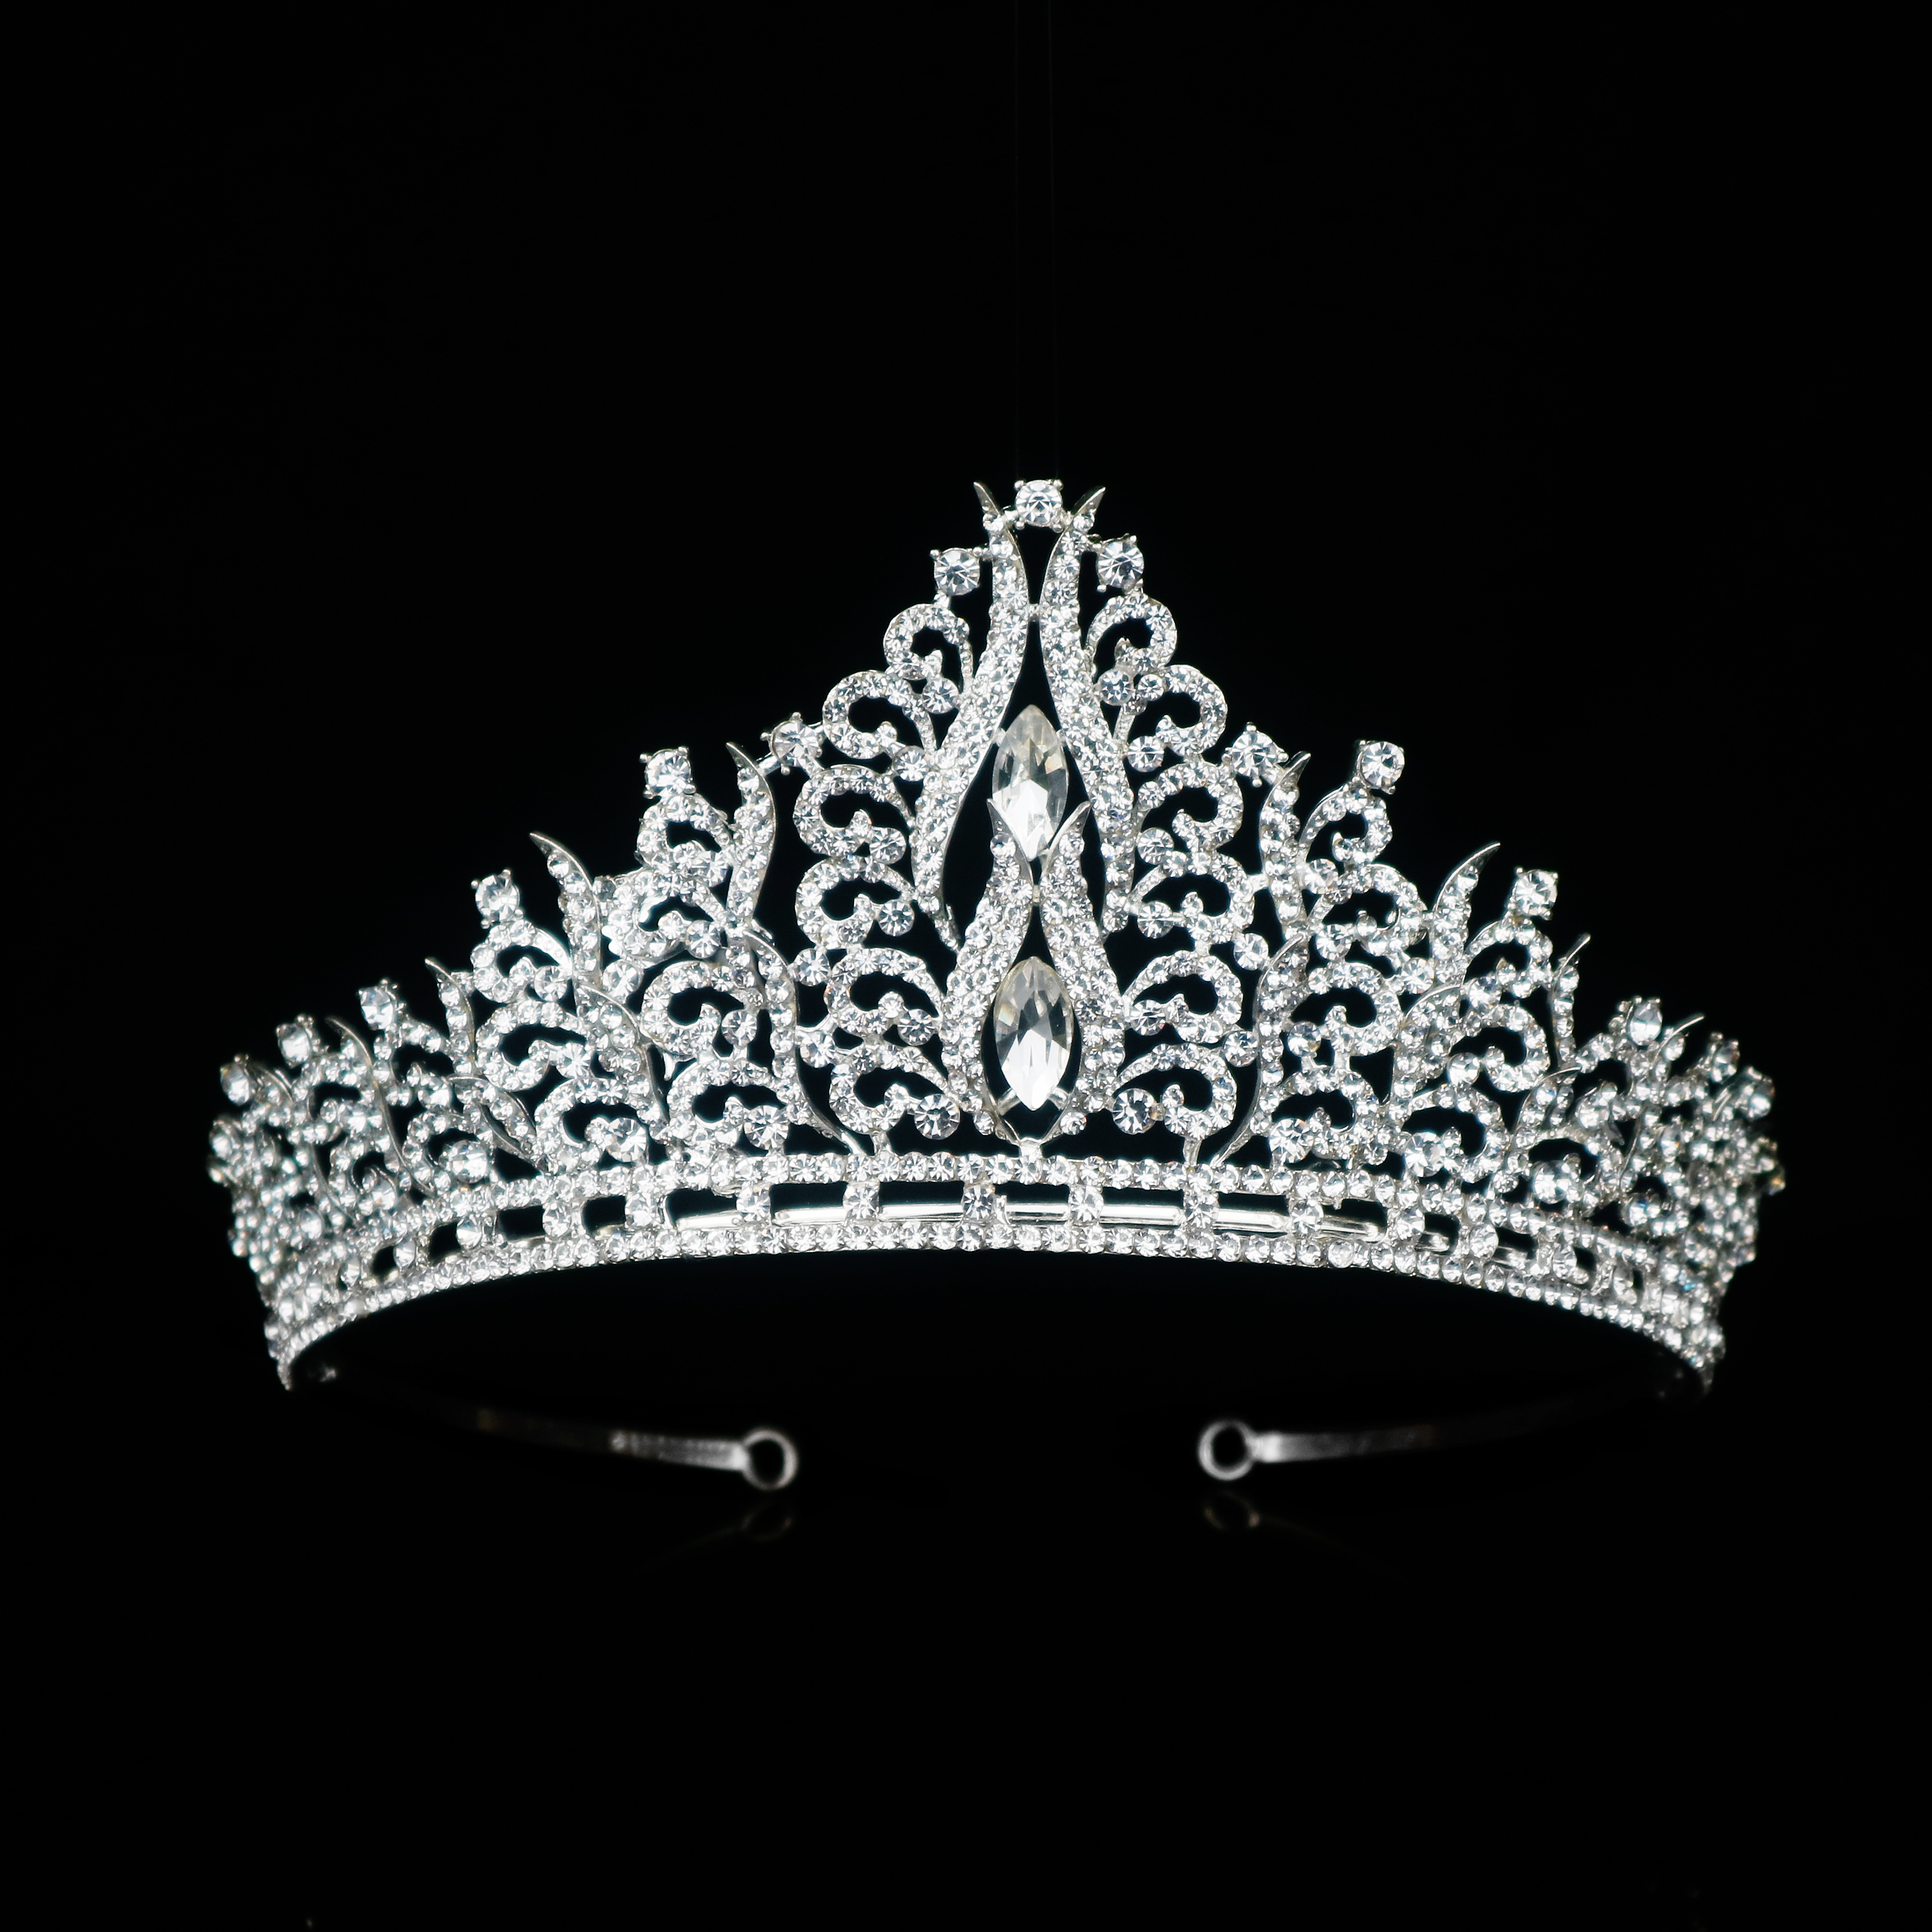 Wholesale Rhinestone Bridal Ballet Tiara Queen Baroque Crystal Wedding <strong>Crown</strong> for head